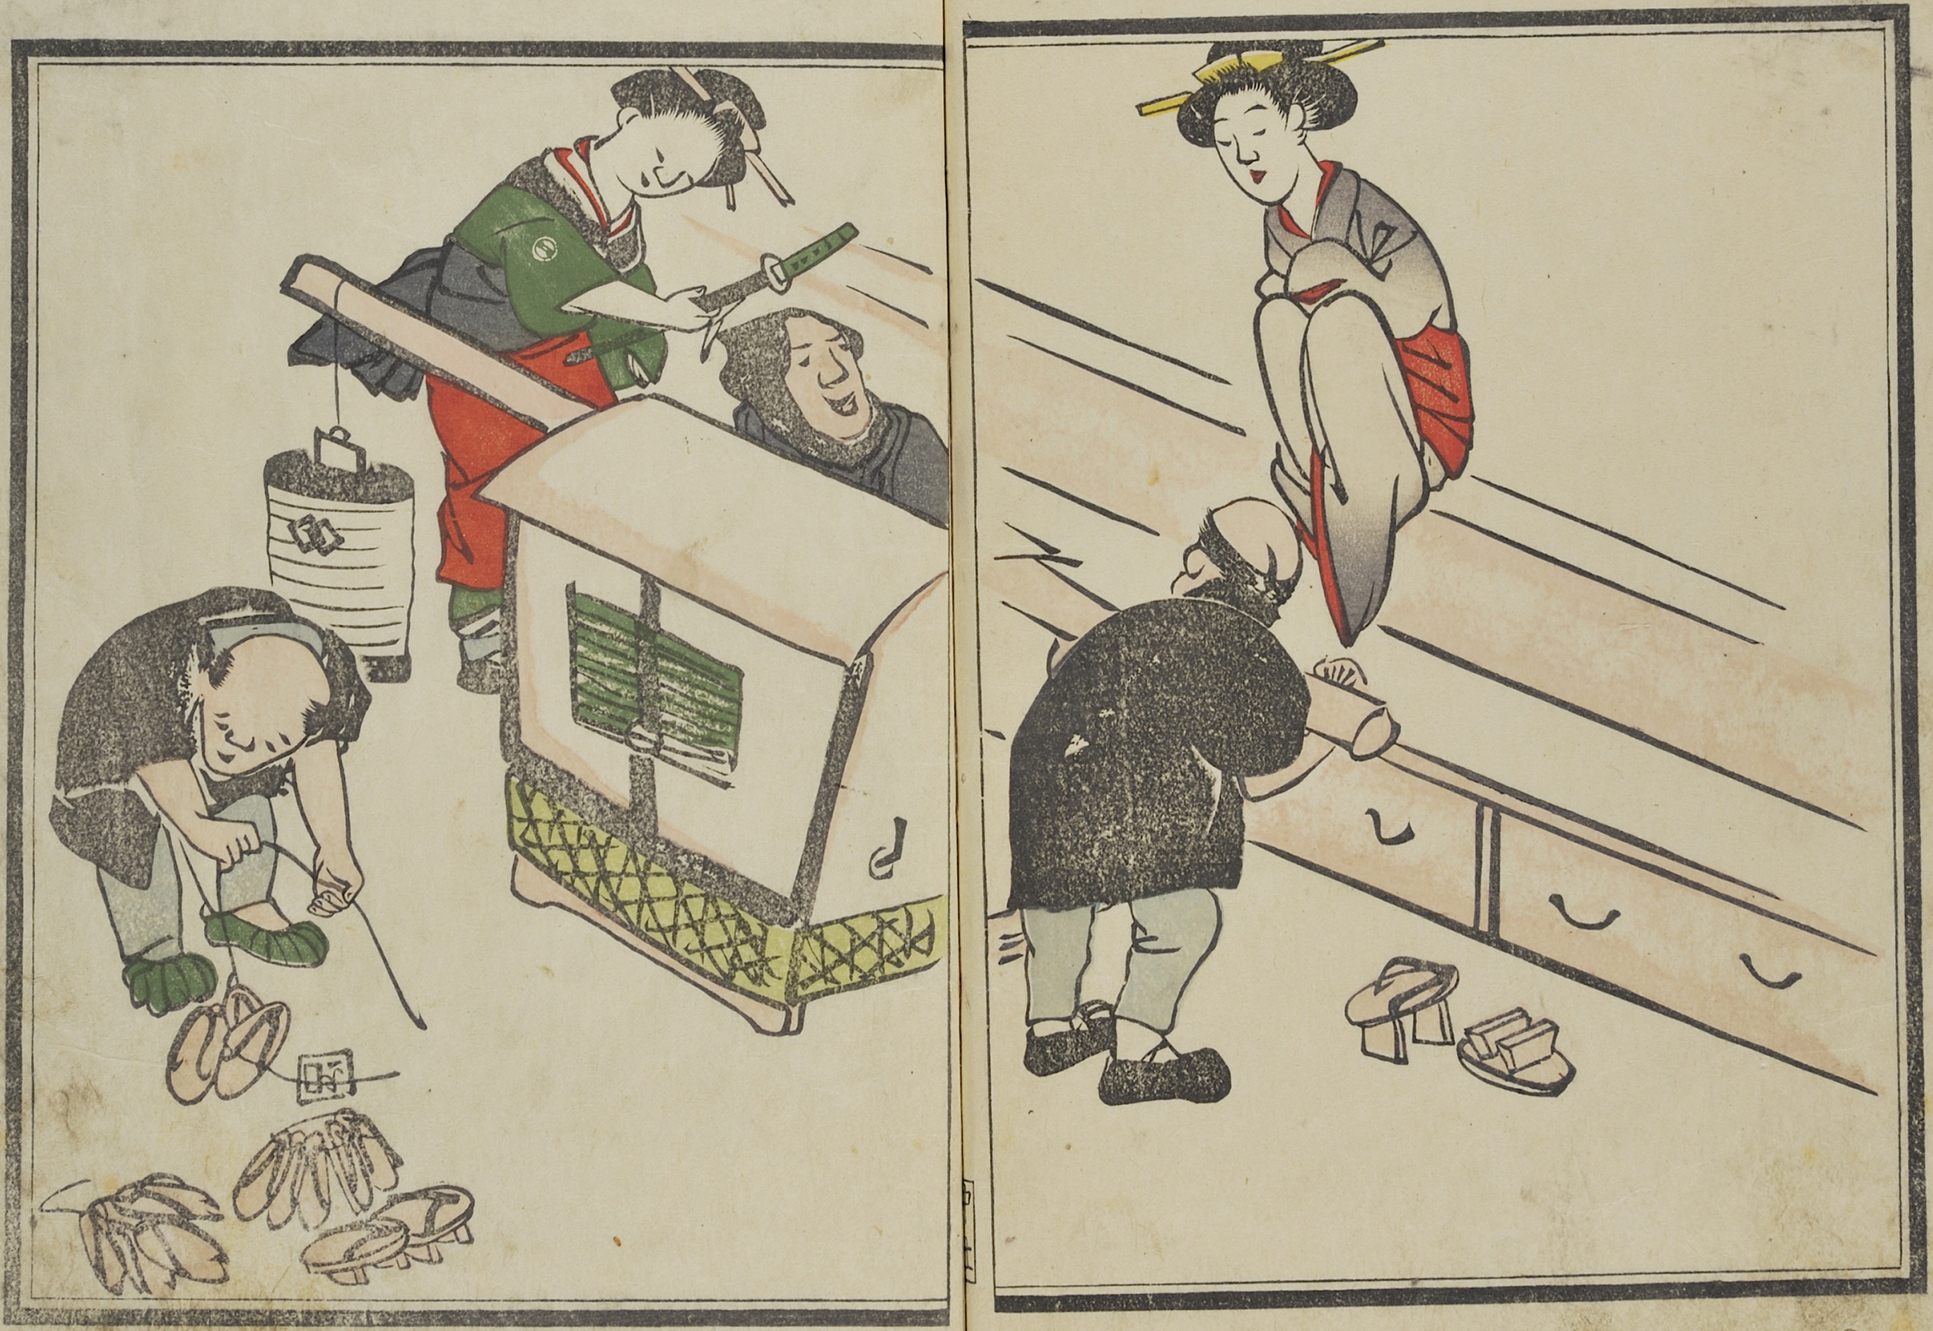 A woodblock print showing a sedan chair being carried by two men in black clothes, and another selling shoes. Two women in kimonos are trying on the shoes, ready to get into the sedan chair.